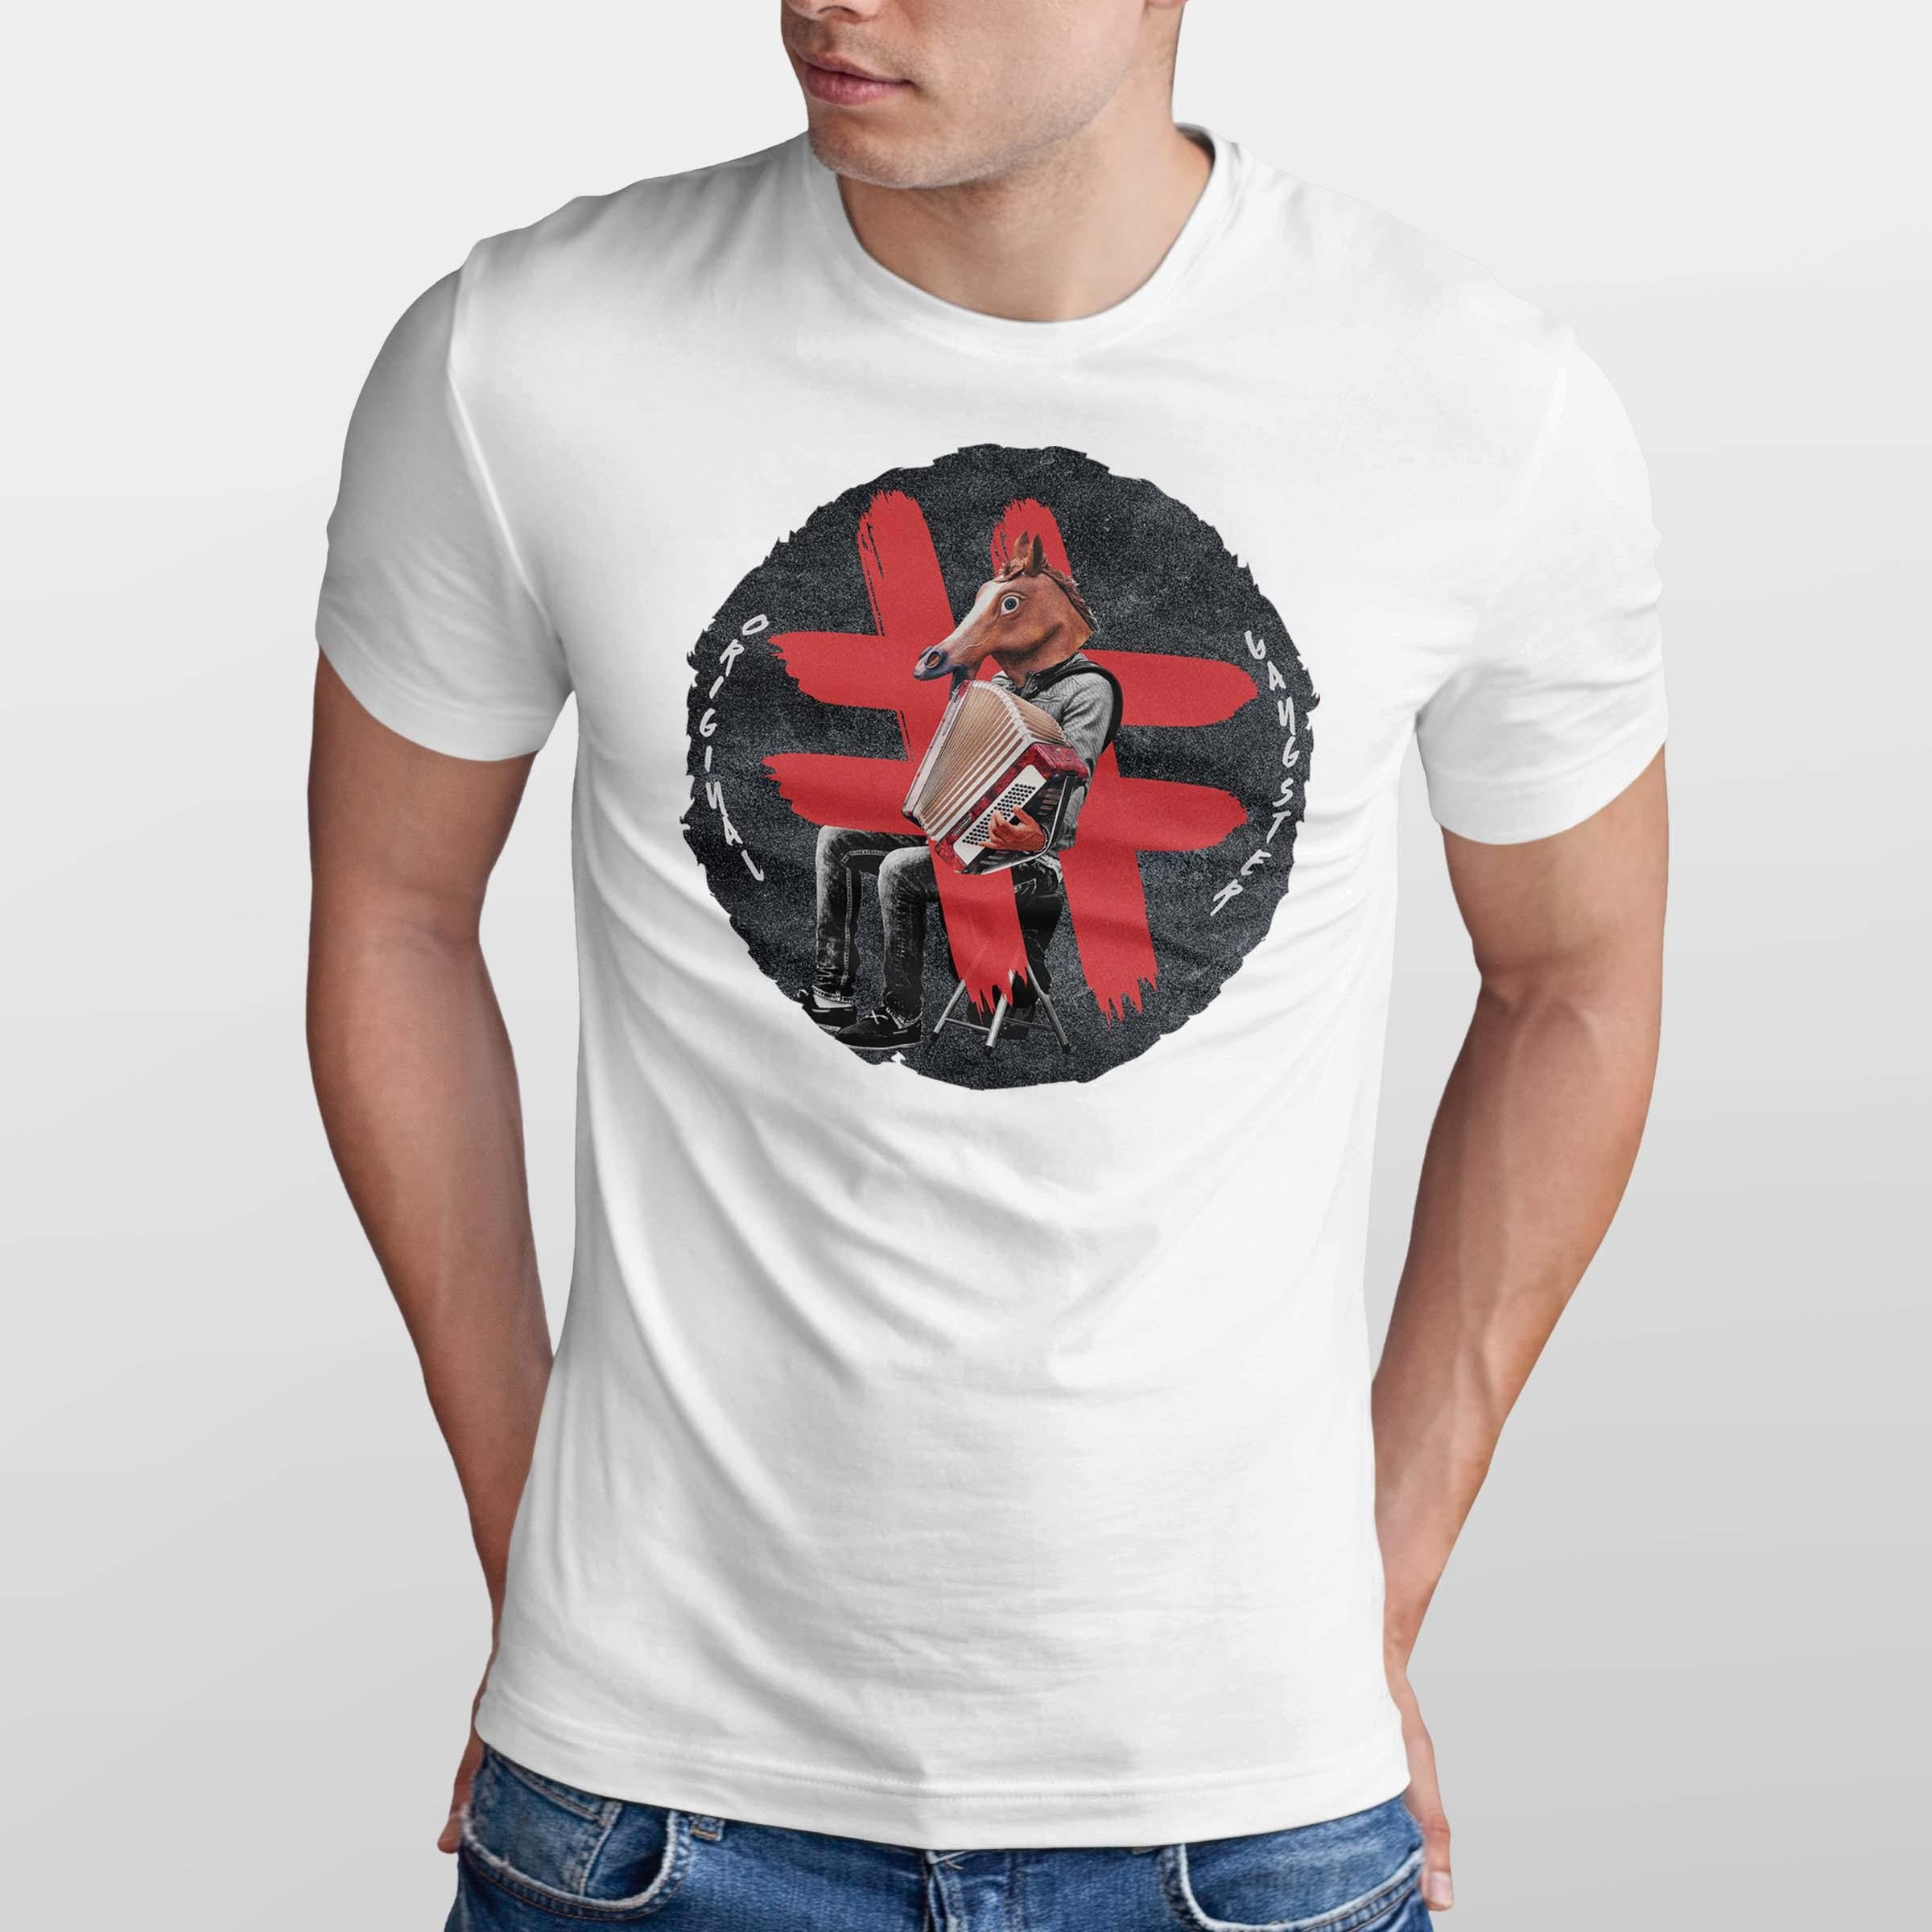 #Horsing Around Men's T-shirt - oglife.in